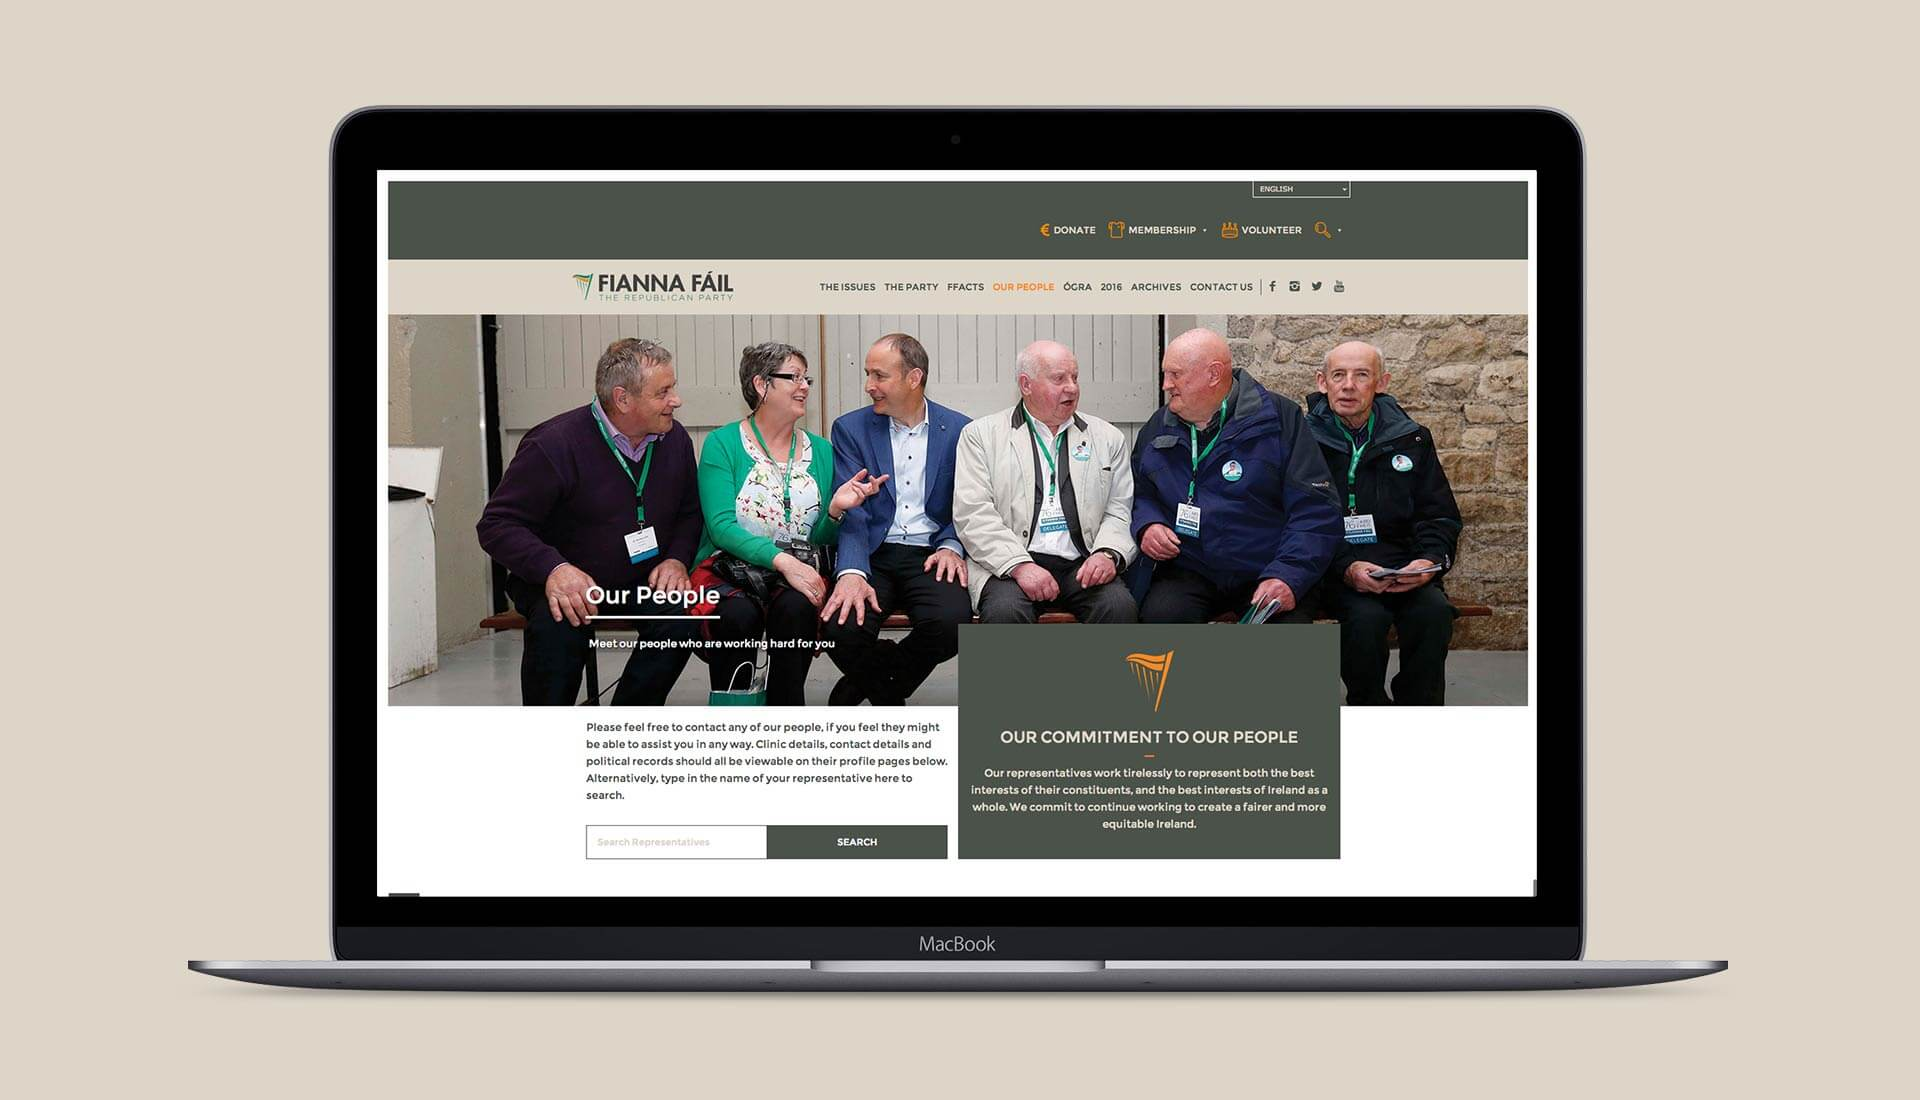 Fianna Fail website page to find representatives on a macbook